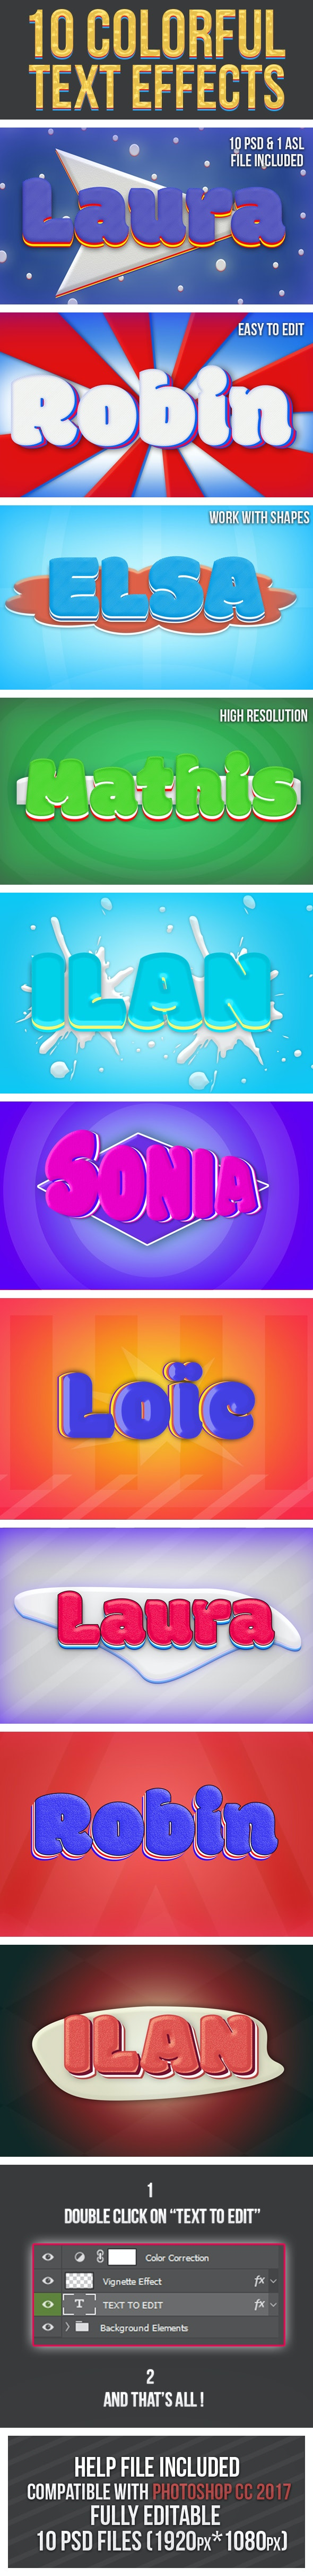 Colorful Text Effects 3 - Text Effects Styles